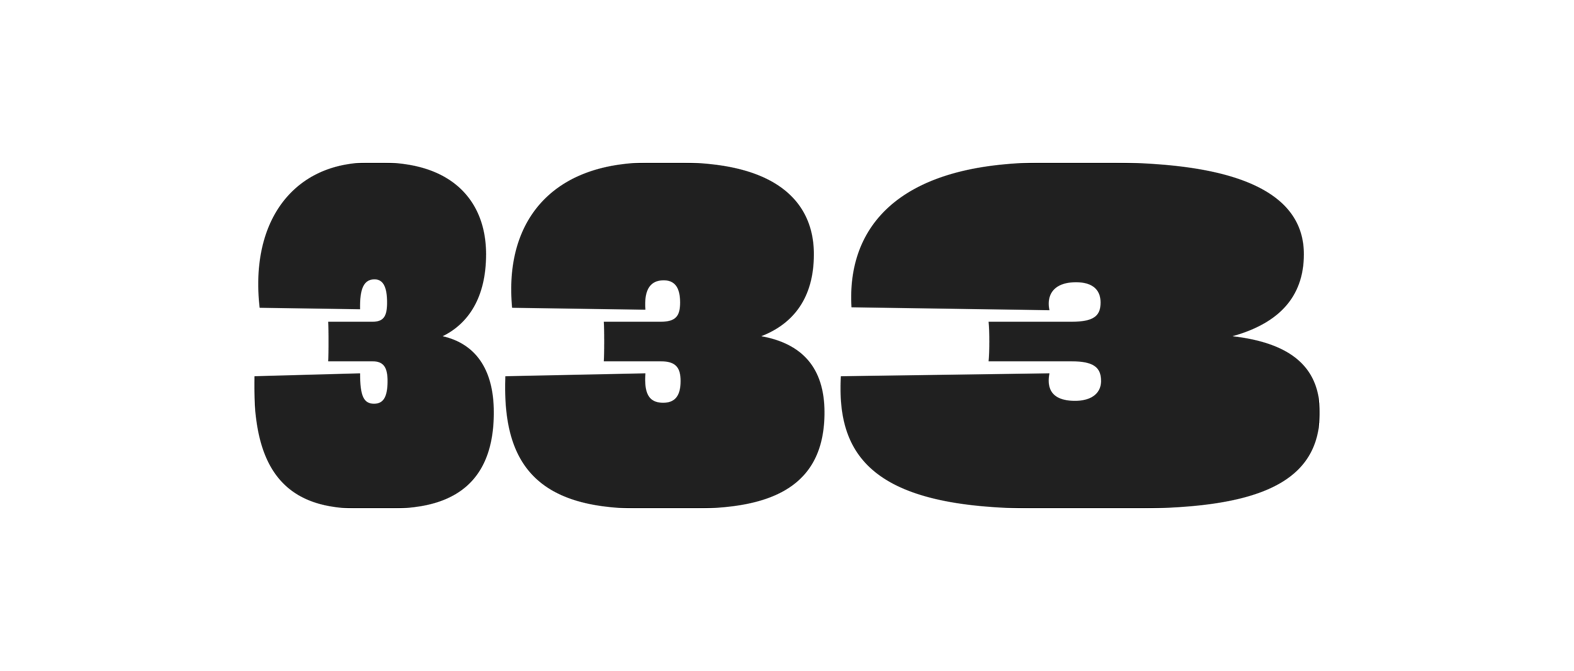 eeeb482f08 If it s not enough that you get two sets of highly stylized numerals in Eames  Century Modern